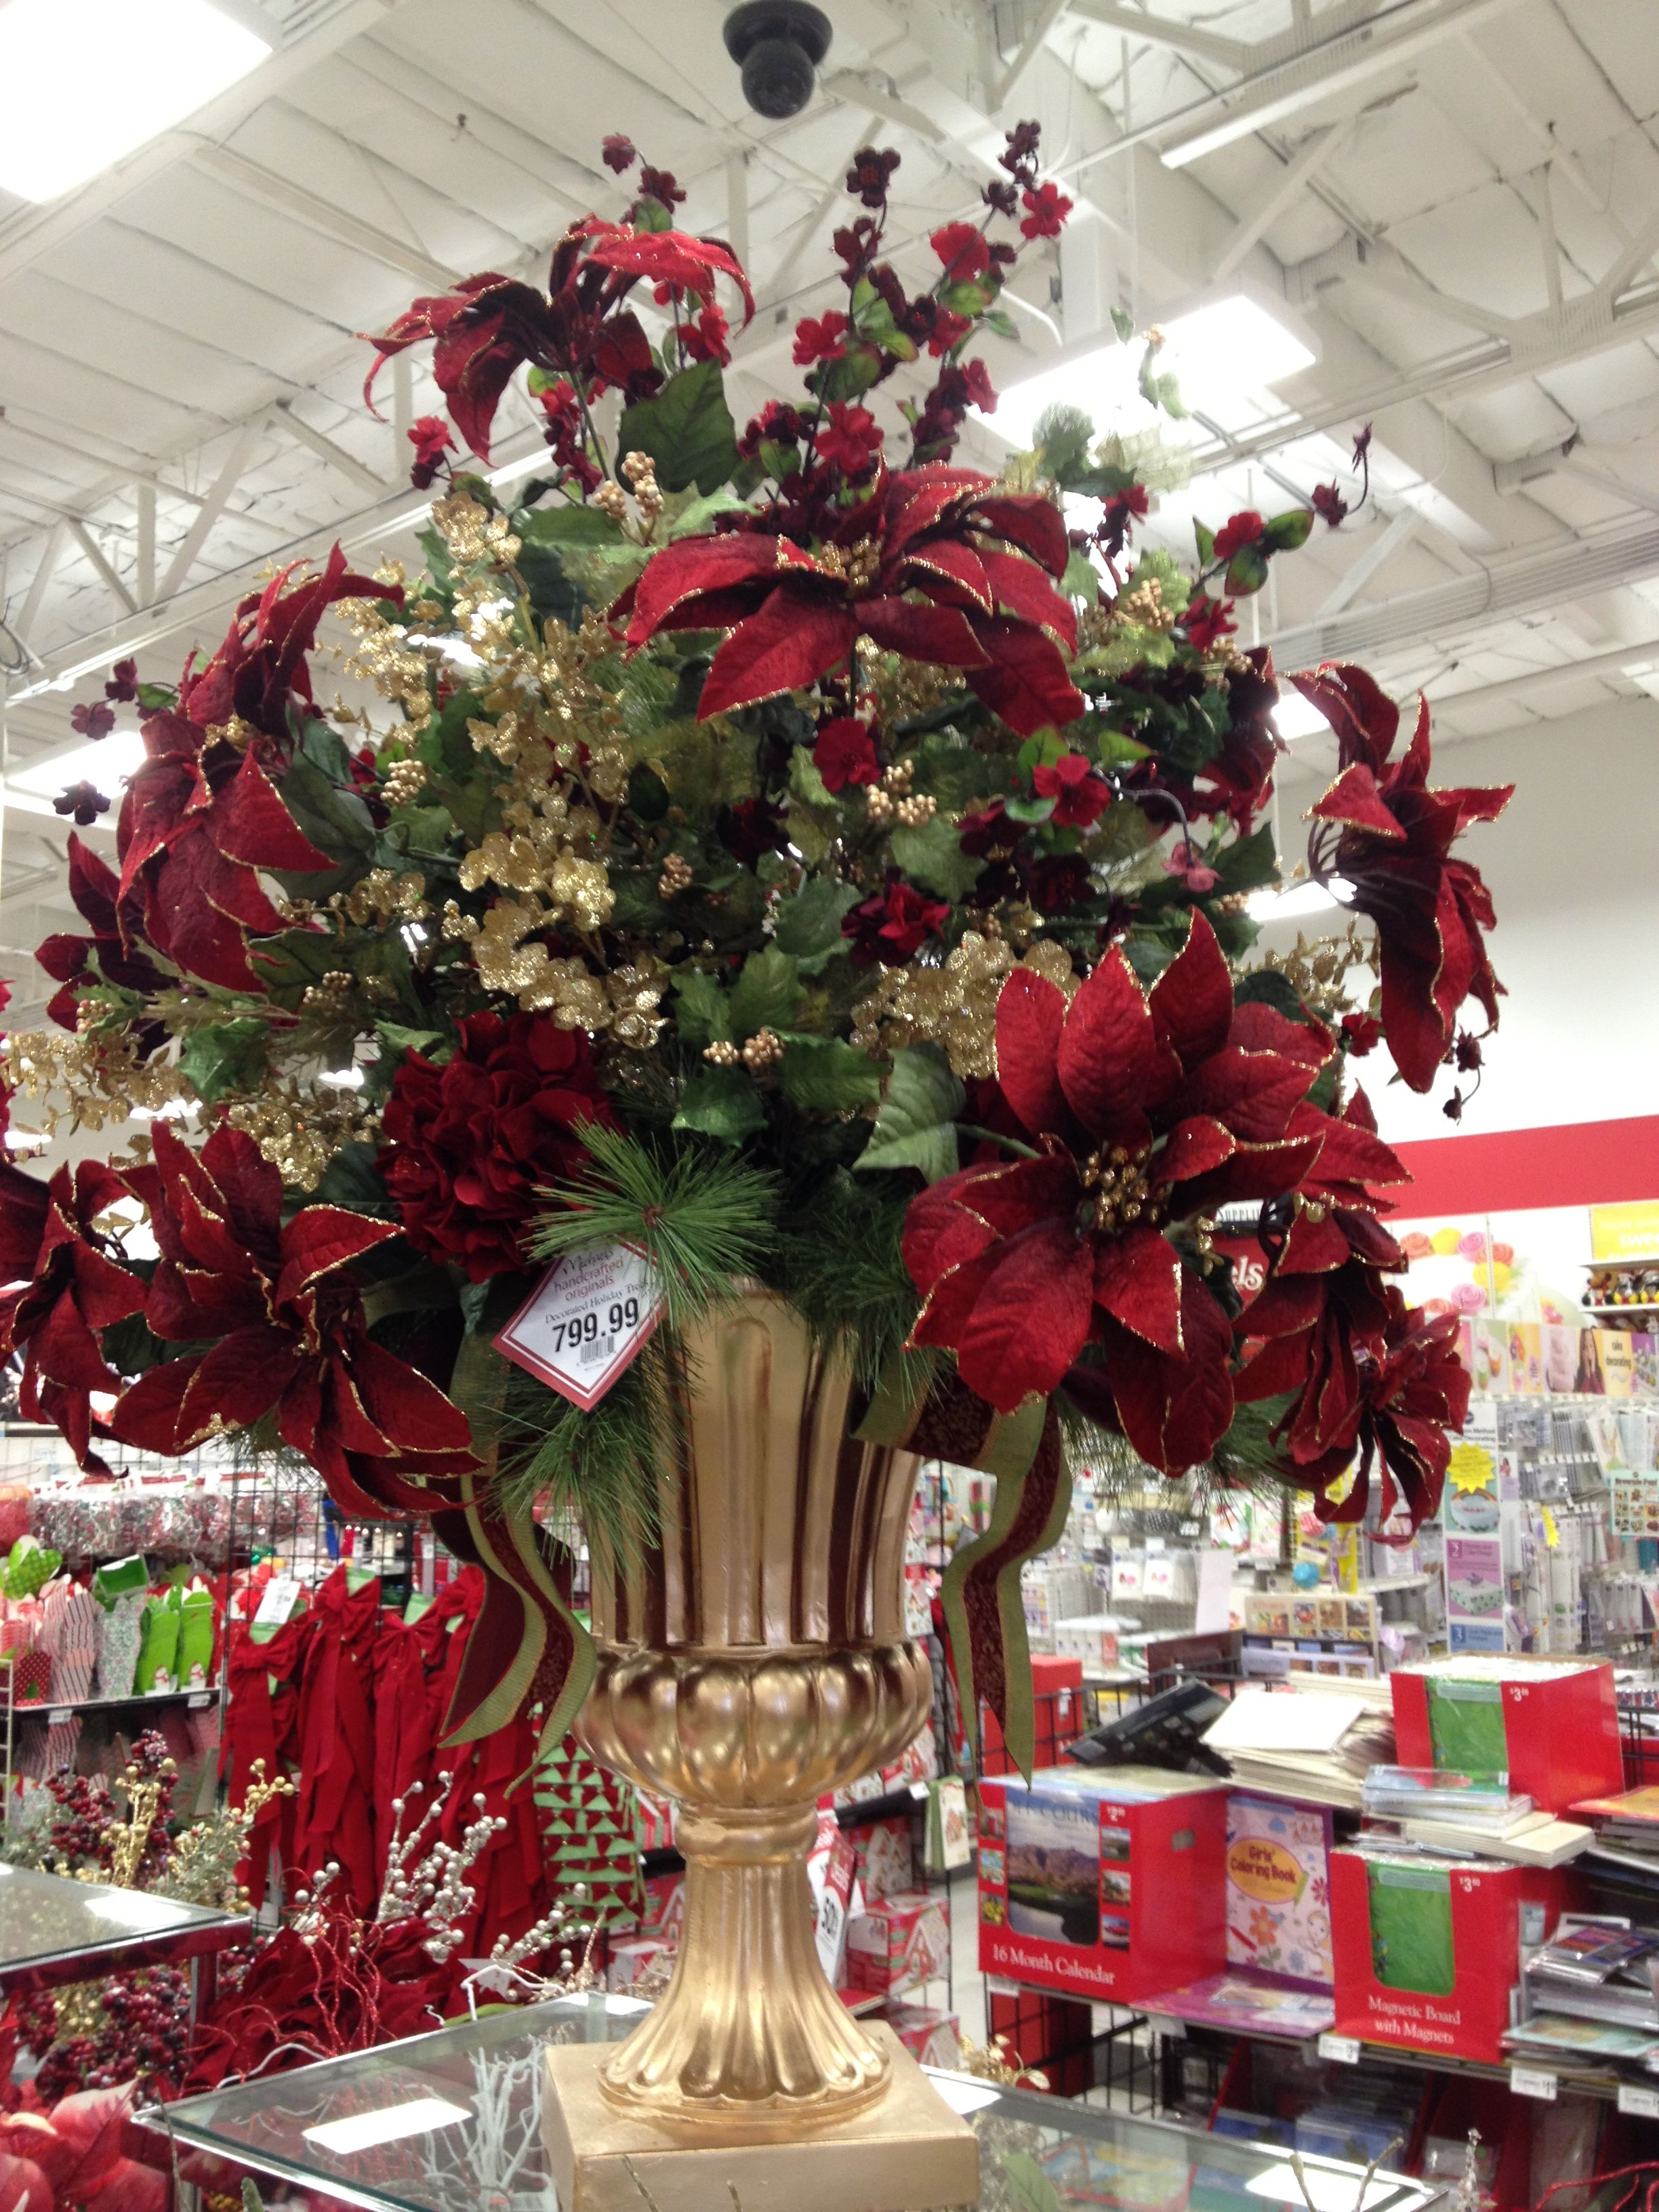 Christmas Traditions Entryway Floral Arrangement Designed by Christian  Rebollo 2012 for store 2870